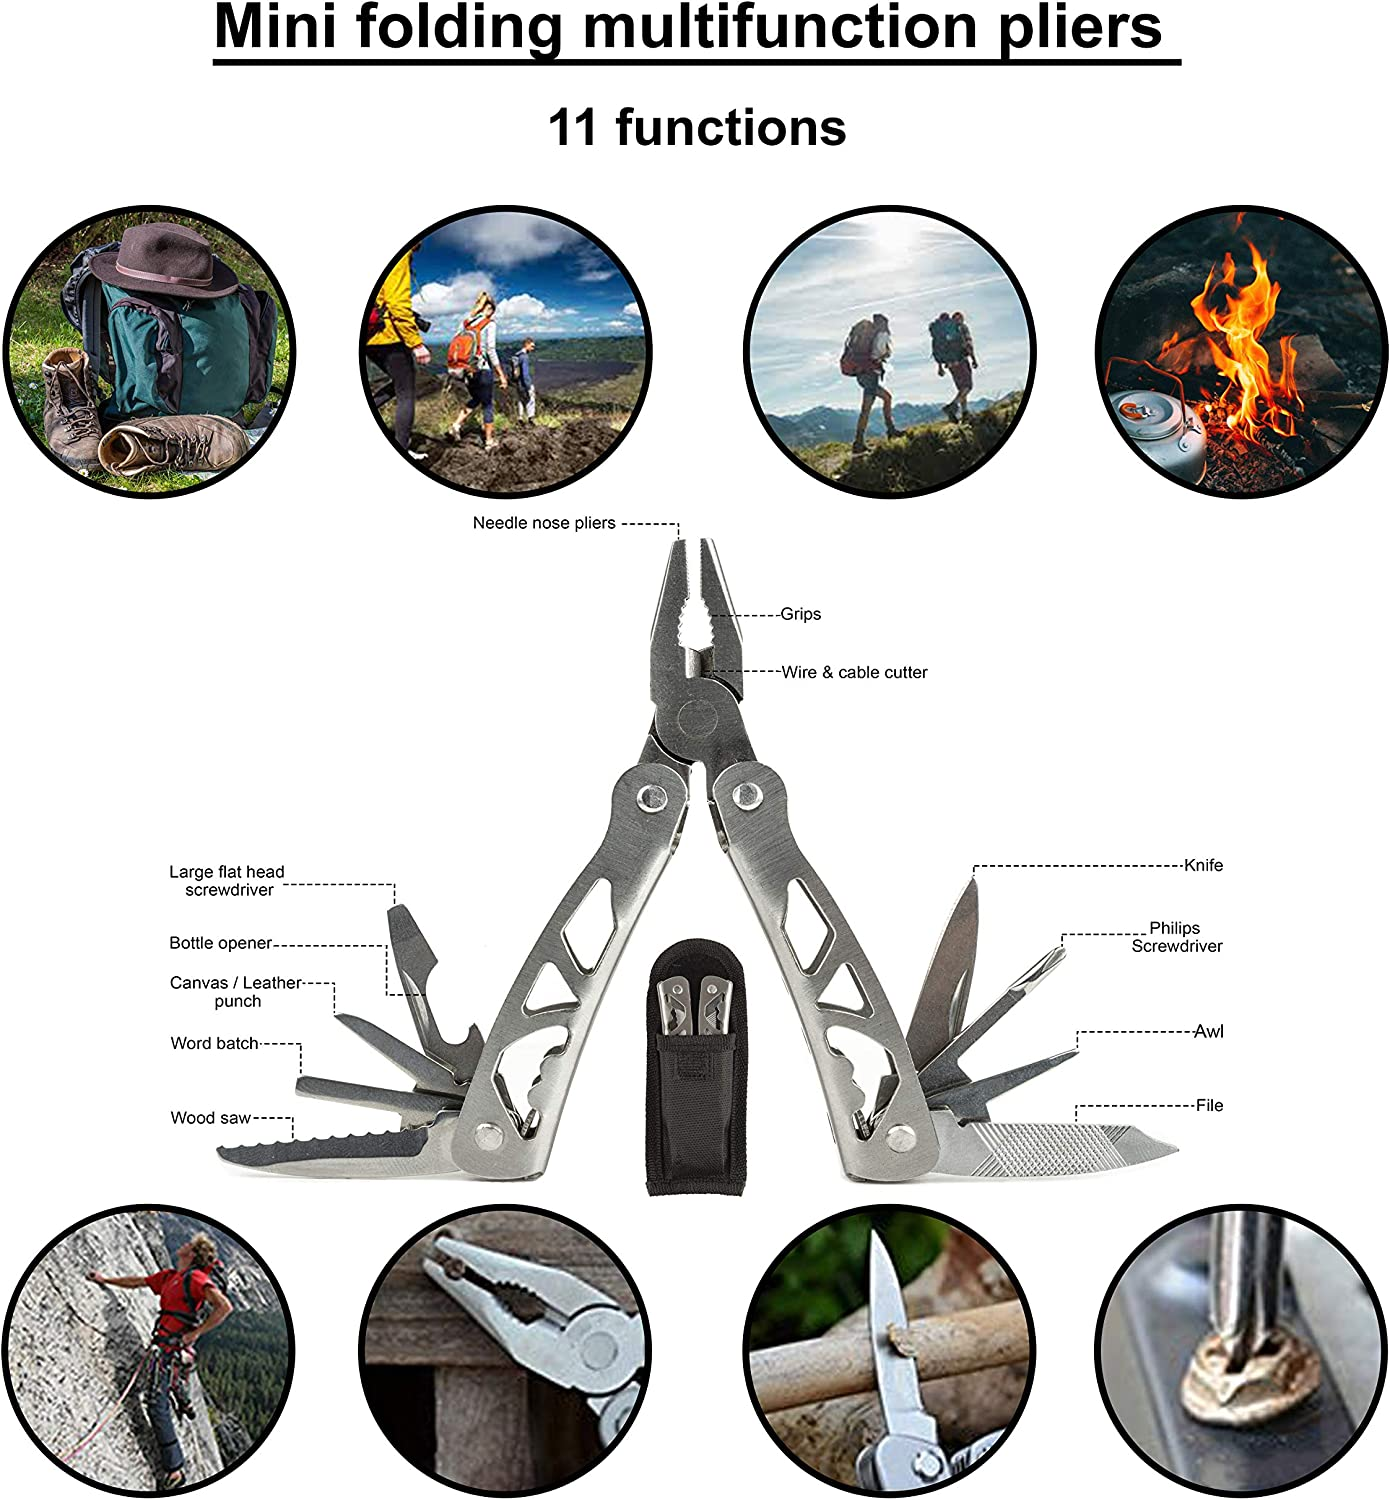 Saber Card Survival Gear for Outdoor MASTER SOS Survival Emergency Kit Headlight Military Knife Hiking and Camping Compass Wire Saw SOS Survival Kit with Emergency Blanket